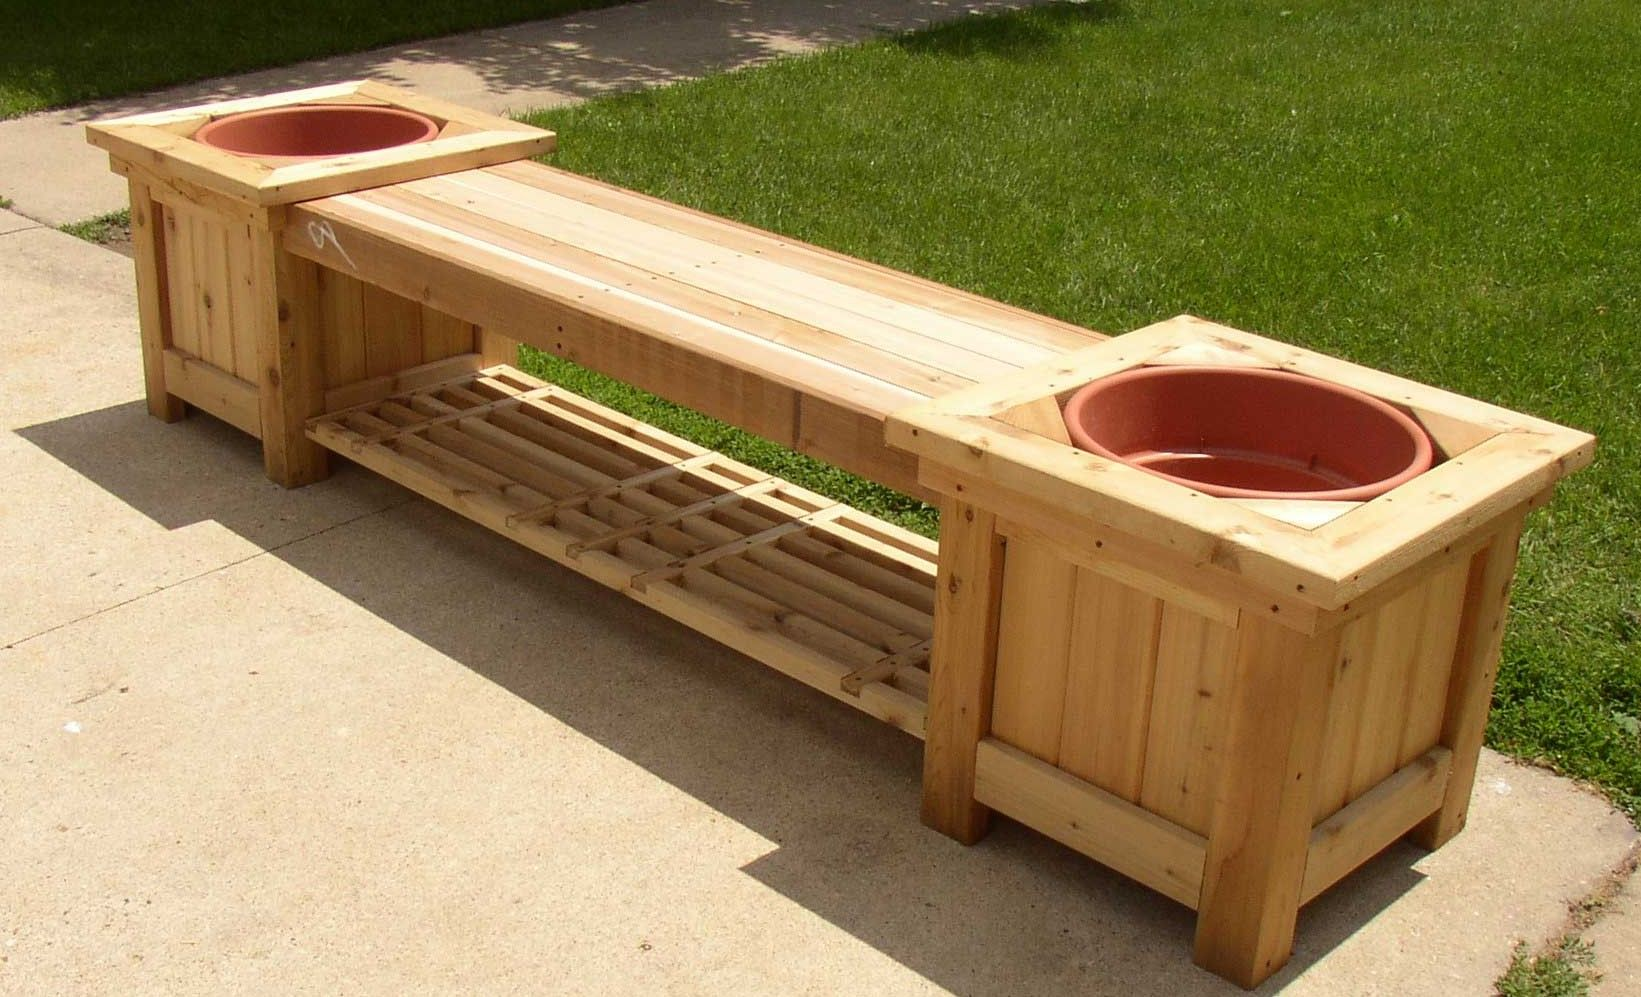 Diy wood planter bench plans wooden pdf build woodworking for Garden planter plans